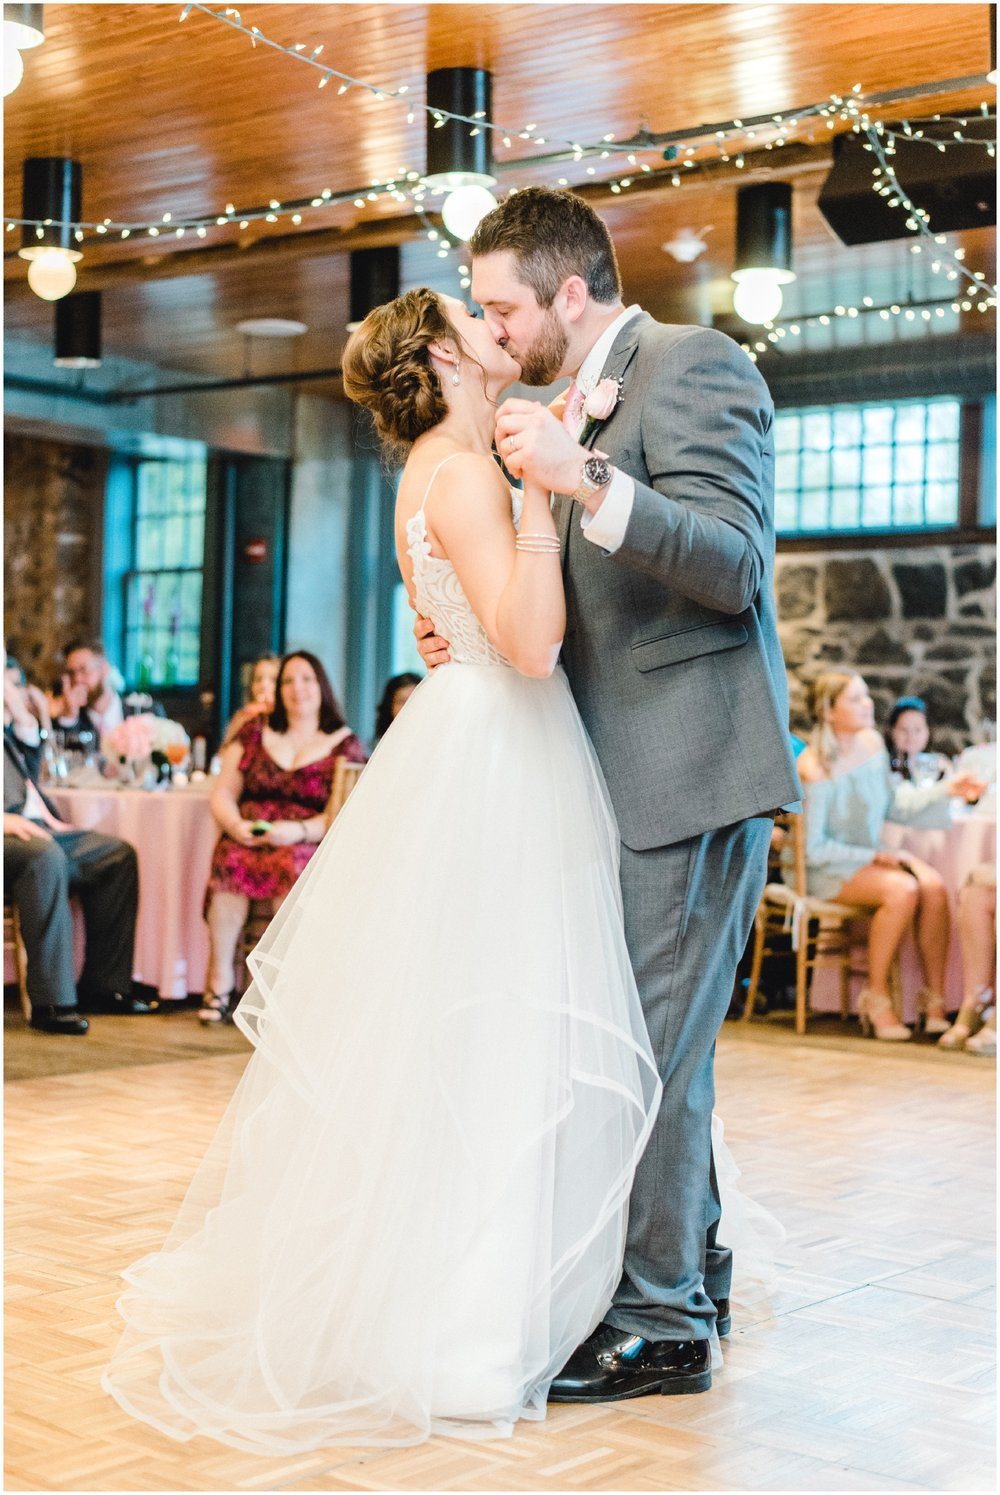 Sunny Spring Wedding at The Carriage House at Rockwood Park in Wilmington, DE- Krista Brackin Photography_0078.jpg